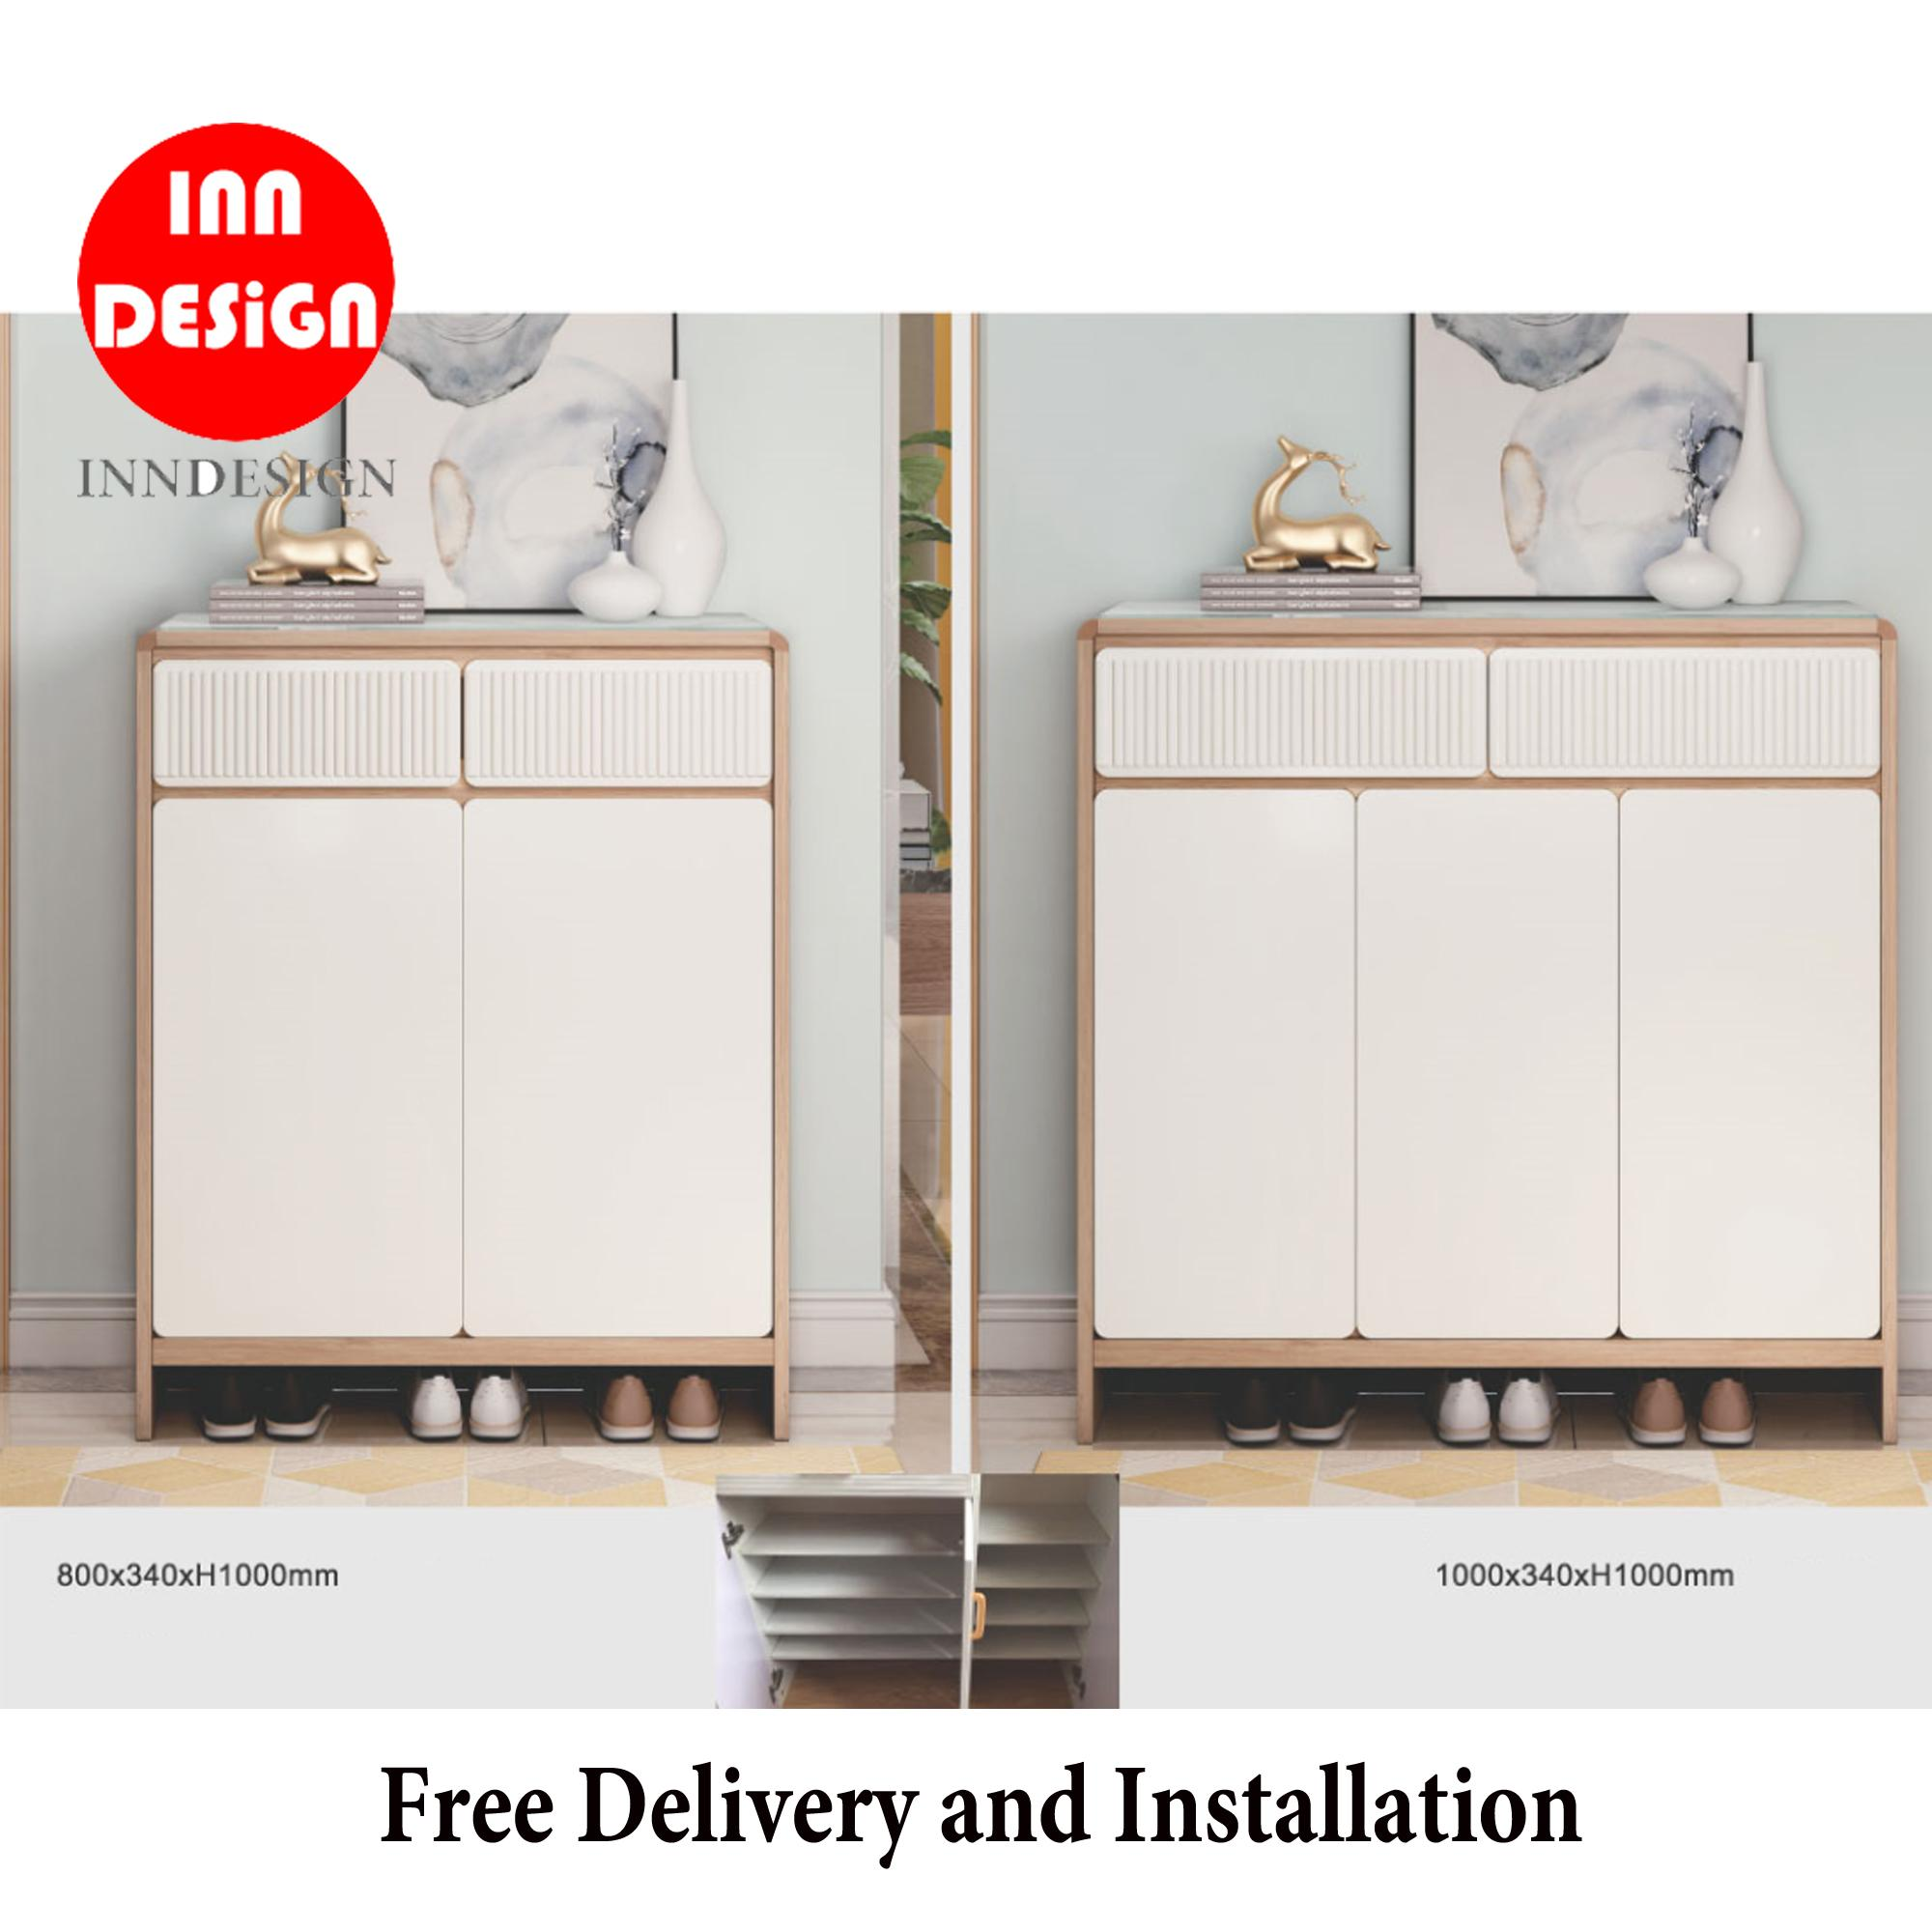 Chairle 2/3 Doors Shoe Cabinet (Free Delivery and Installation)